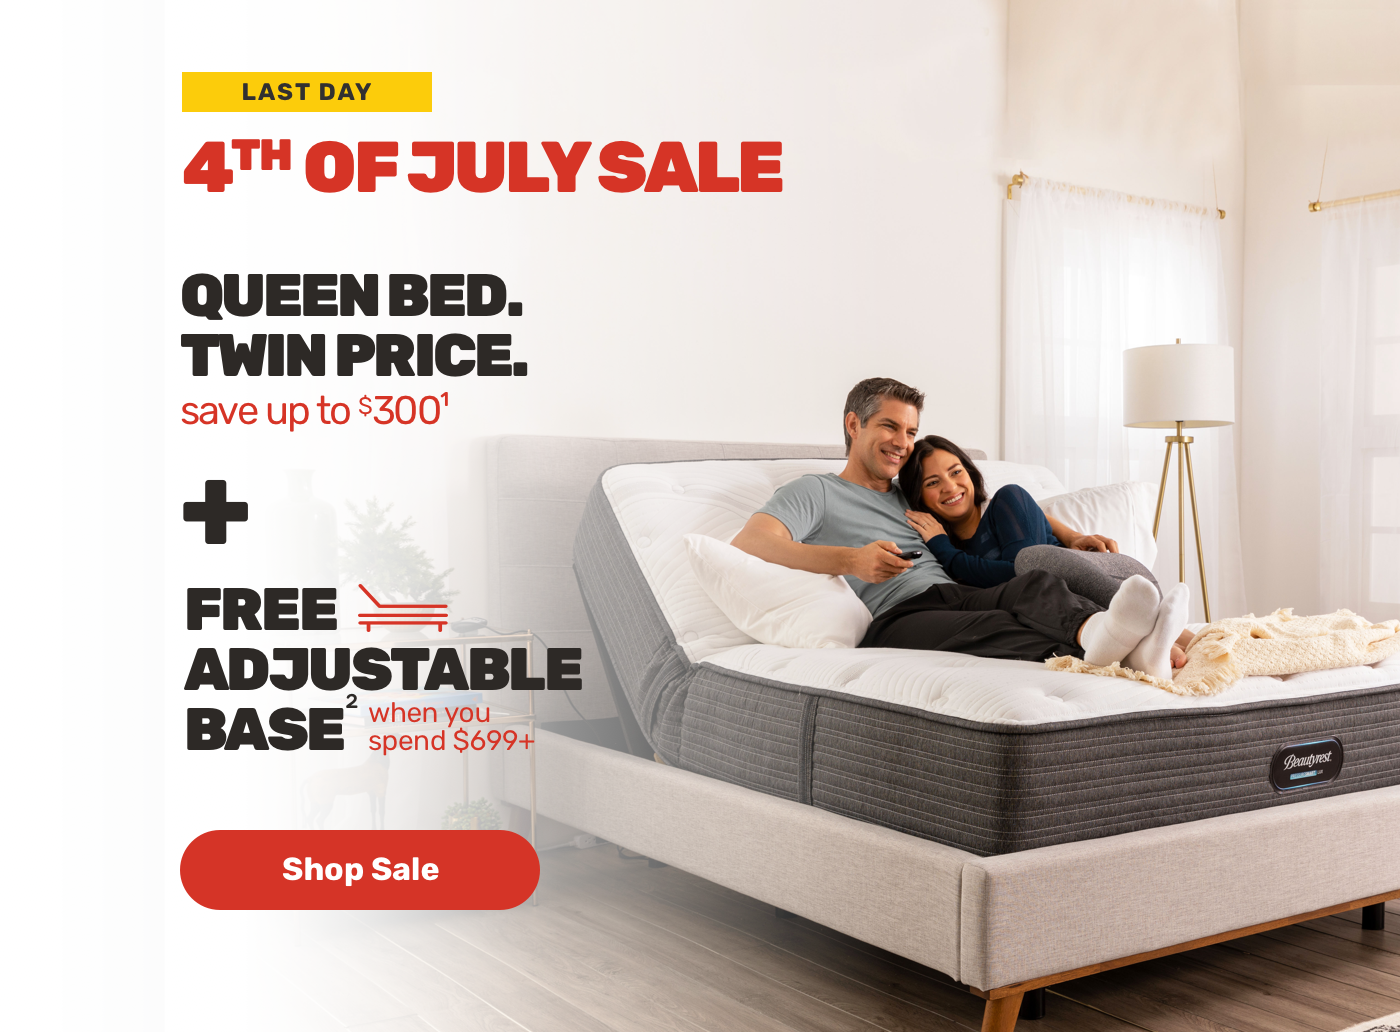 last Day 4th Of july sale Queen Bed Twin Price save upto $300 + Free Adjustable base when you spend $699 Shop Sale